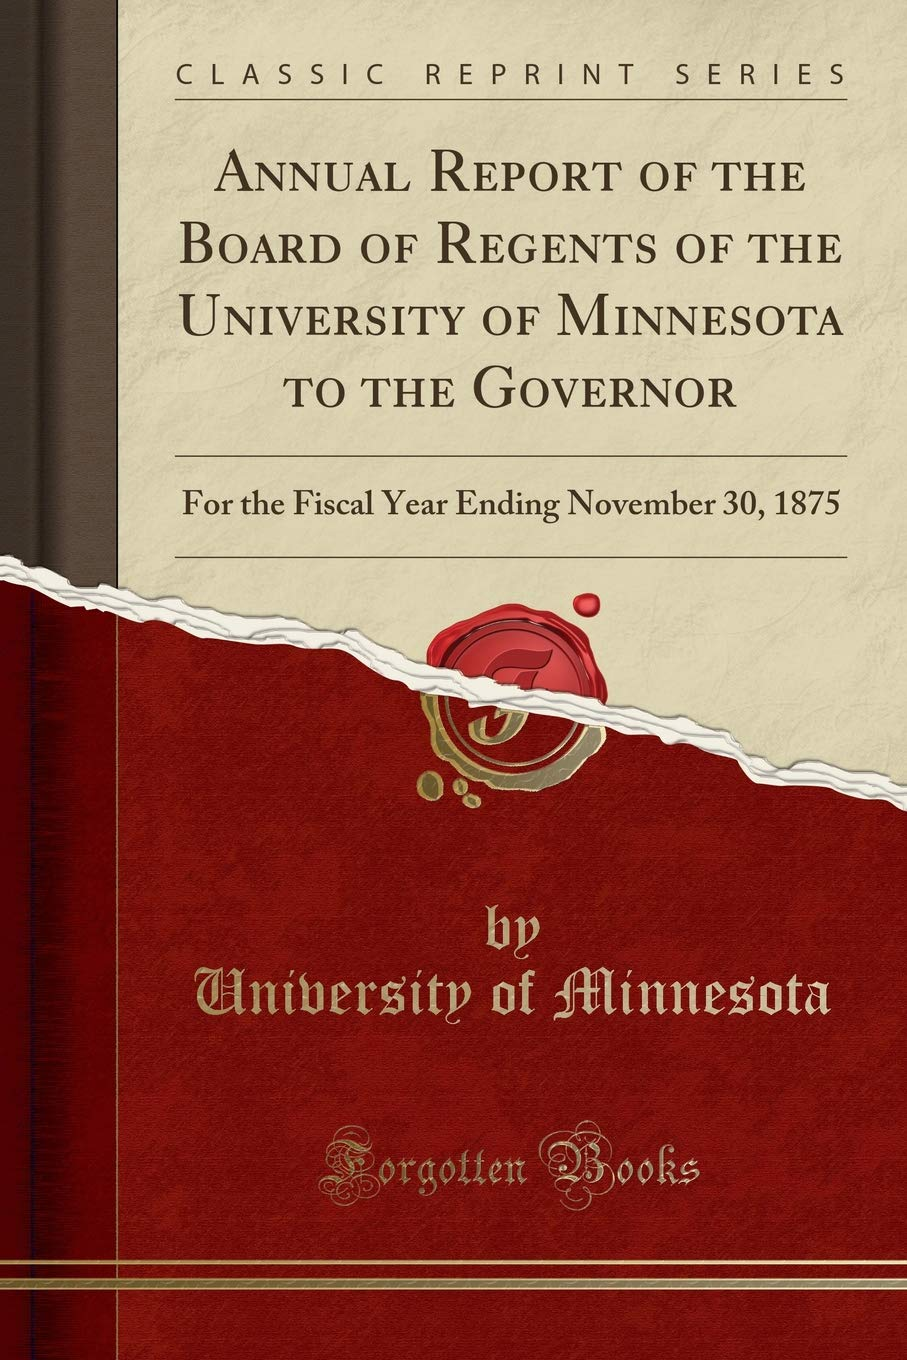 Download Annual Report of the Board of Regents of the University of Minnesota to the Governor: For the Fiscal Year Ending November 30, 1875 (Classic Reprint) PDF